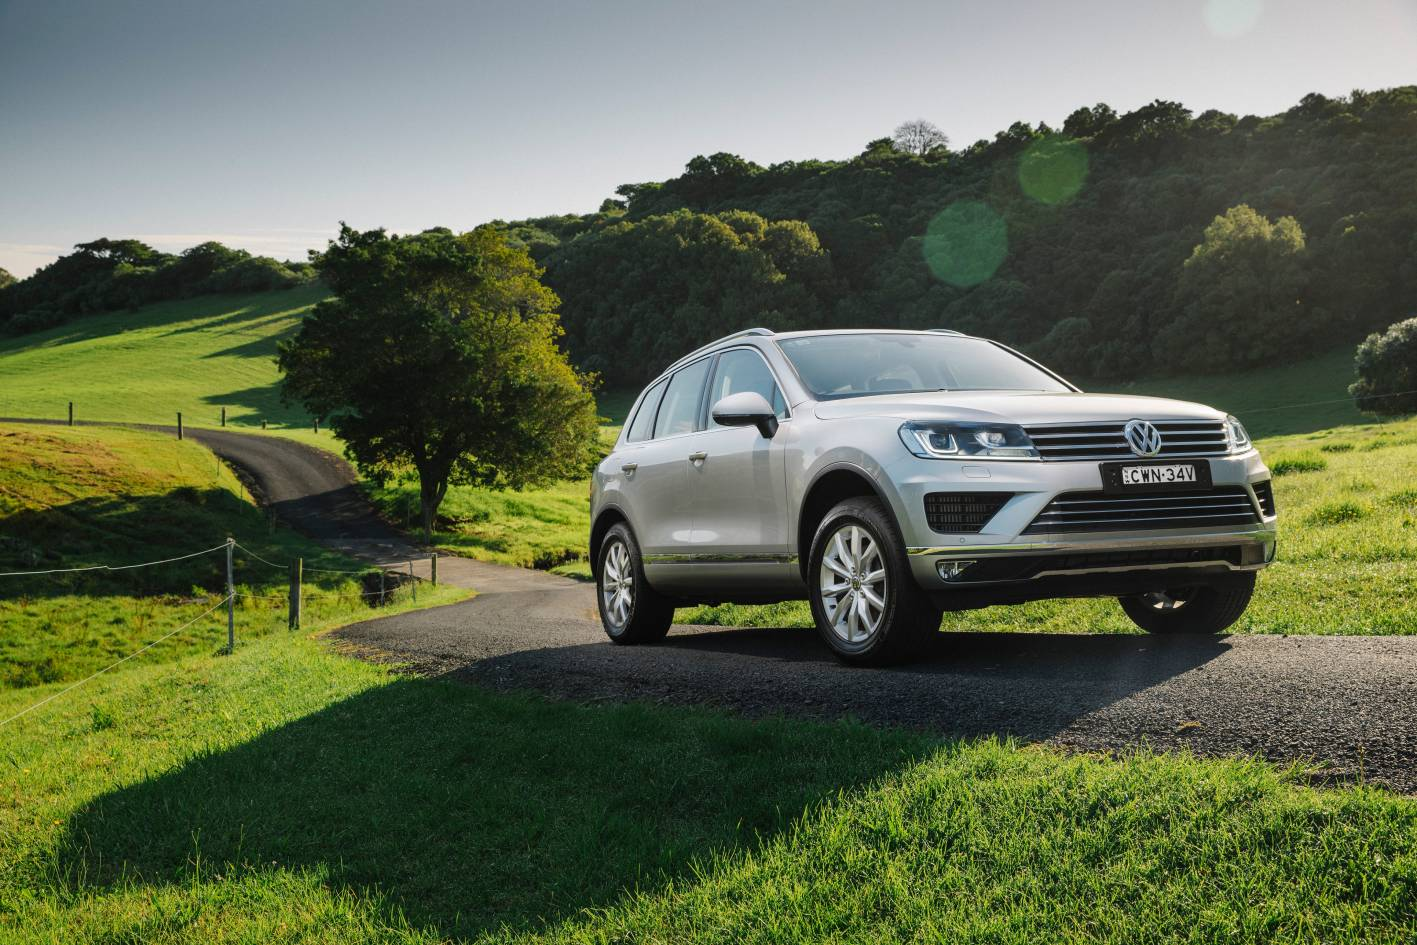 Volkswagen Cars News 2015 Vw Touareg Refreshed With